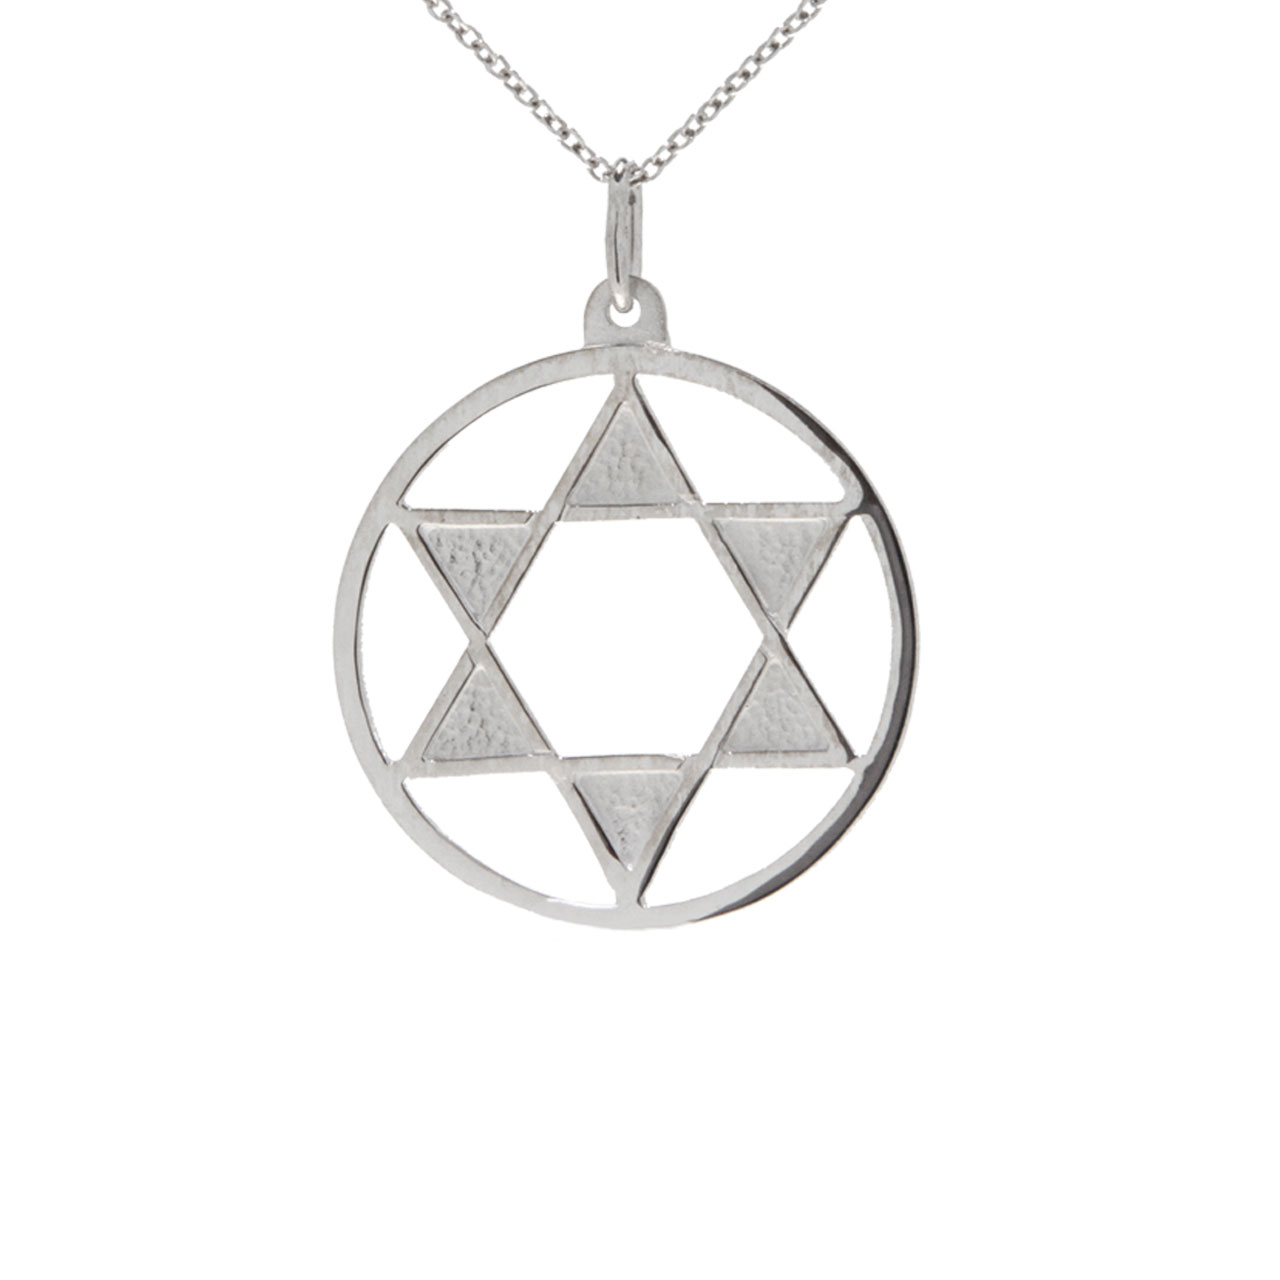 The Star of David Silver Pendant